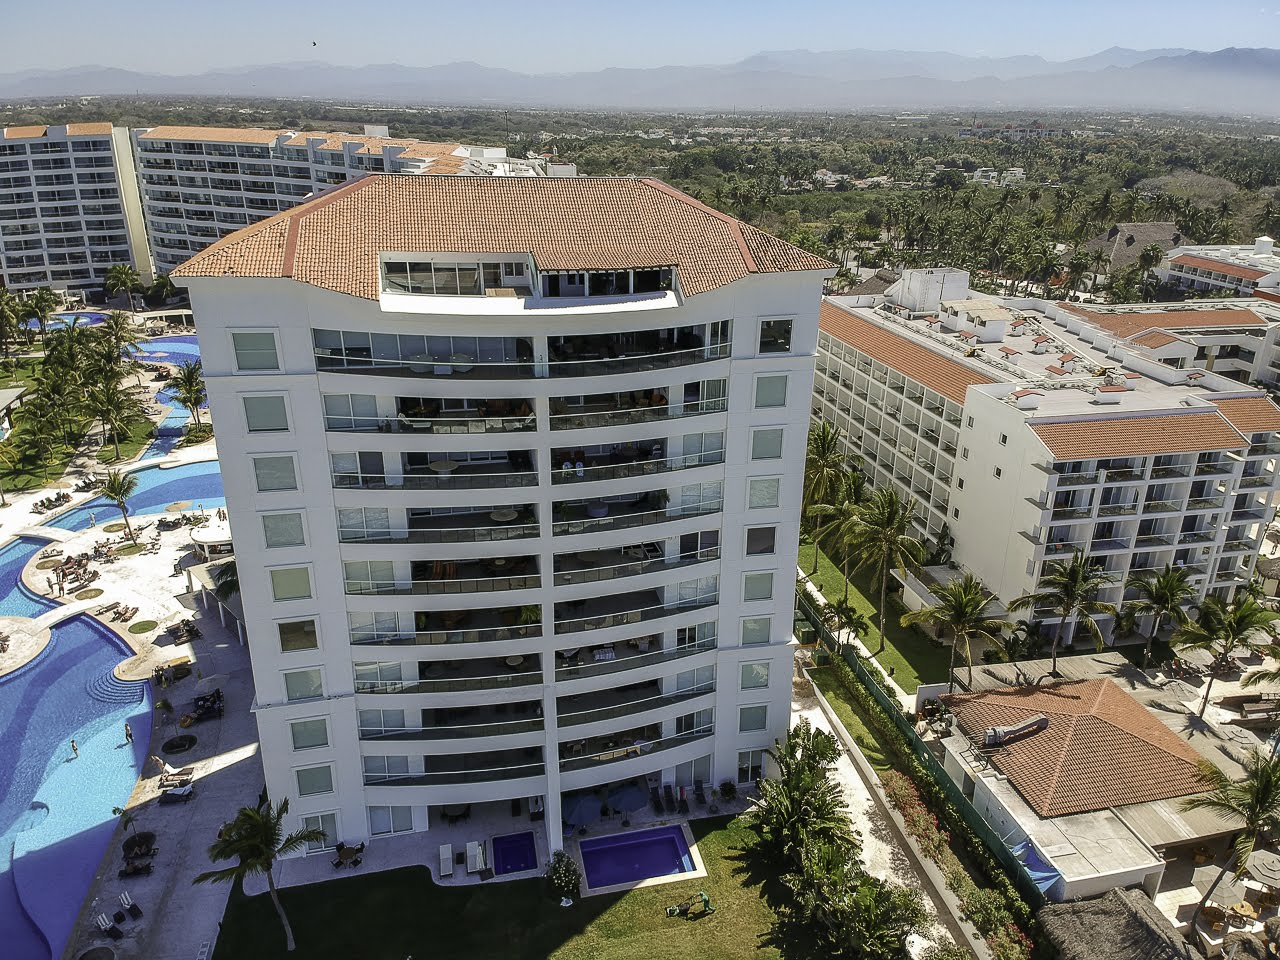 Drone shot Beachfront Penthouse Luxury Condo Nuevo Vallarta